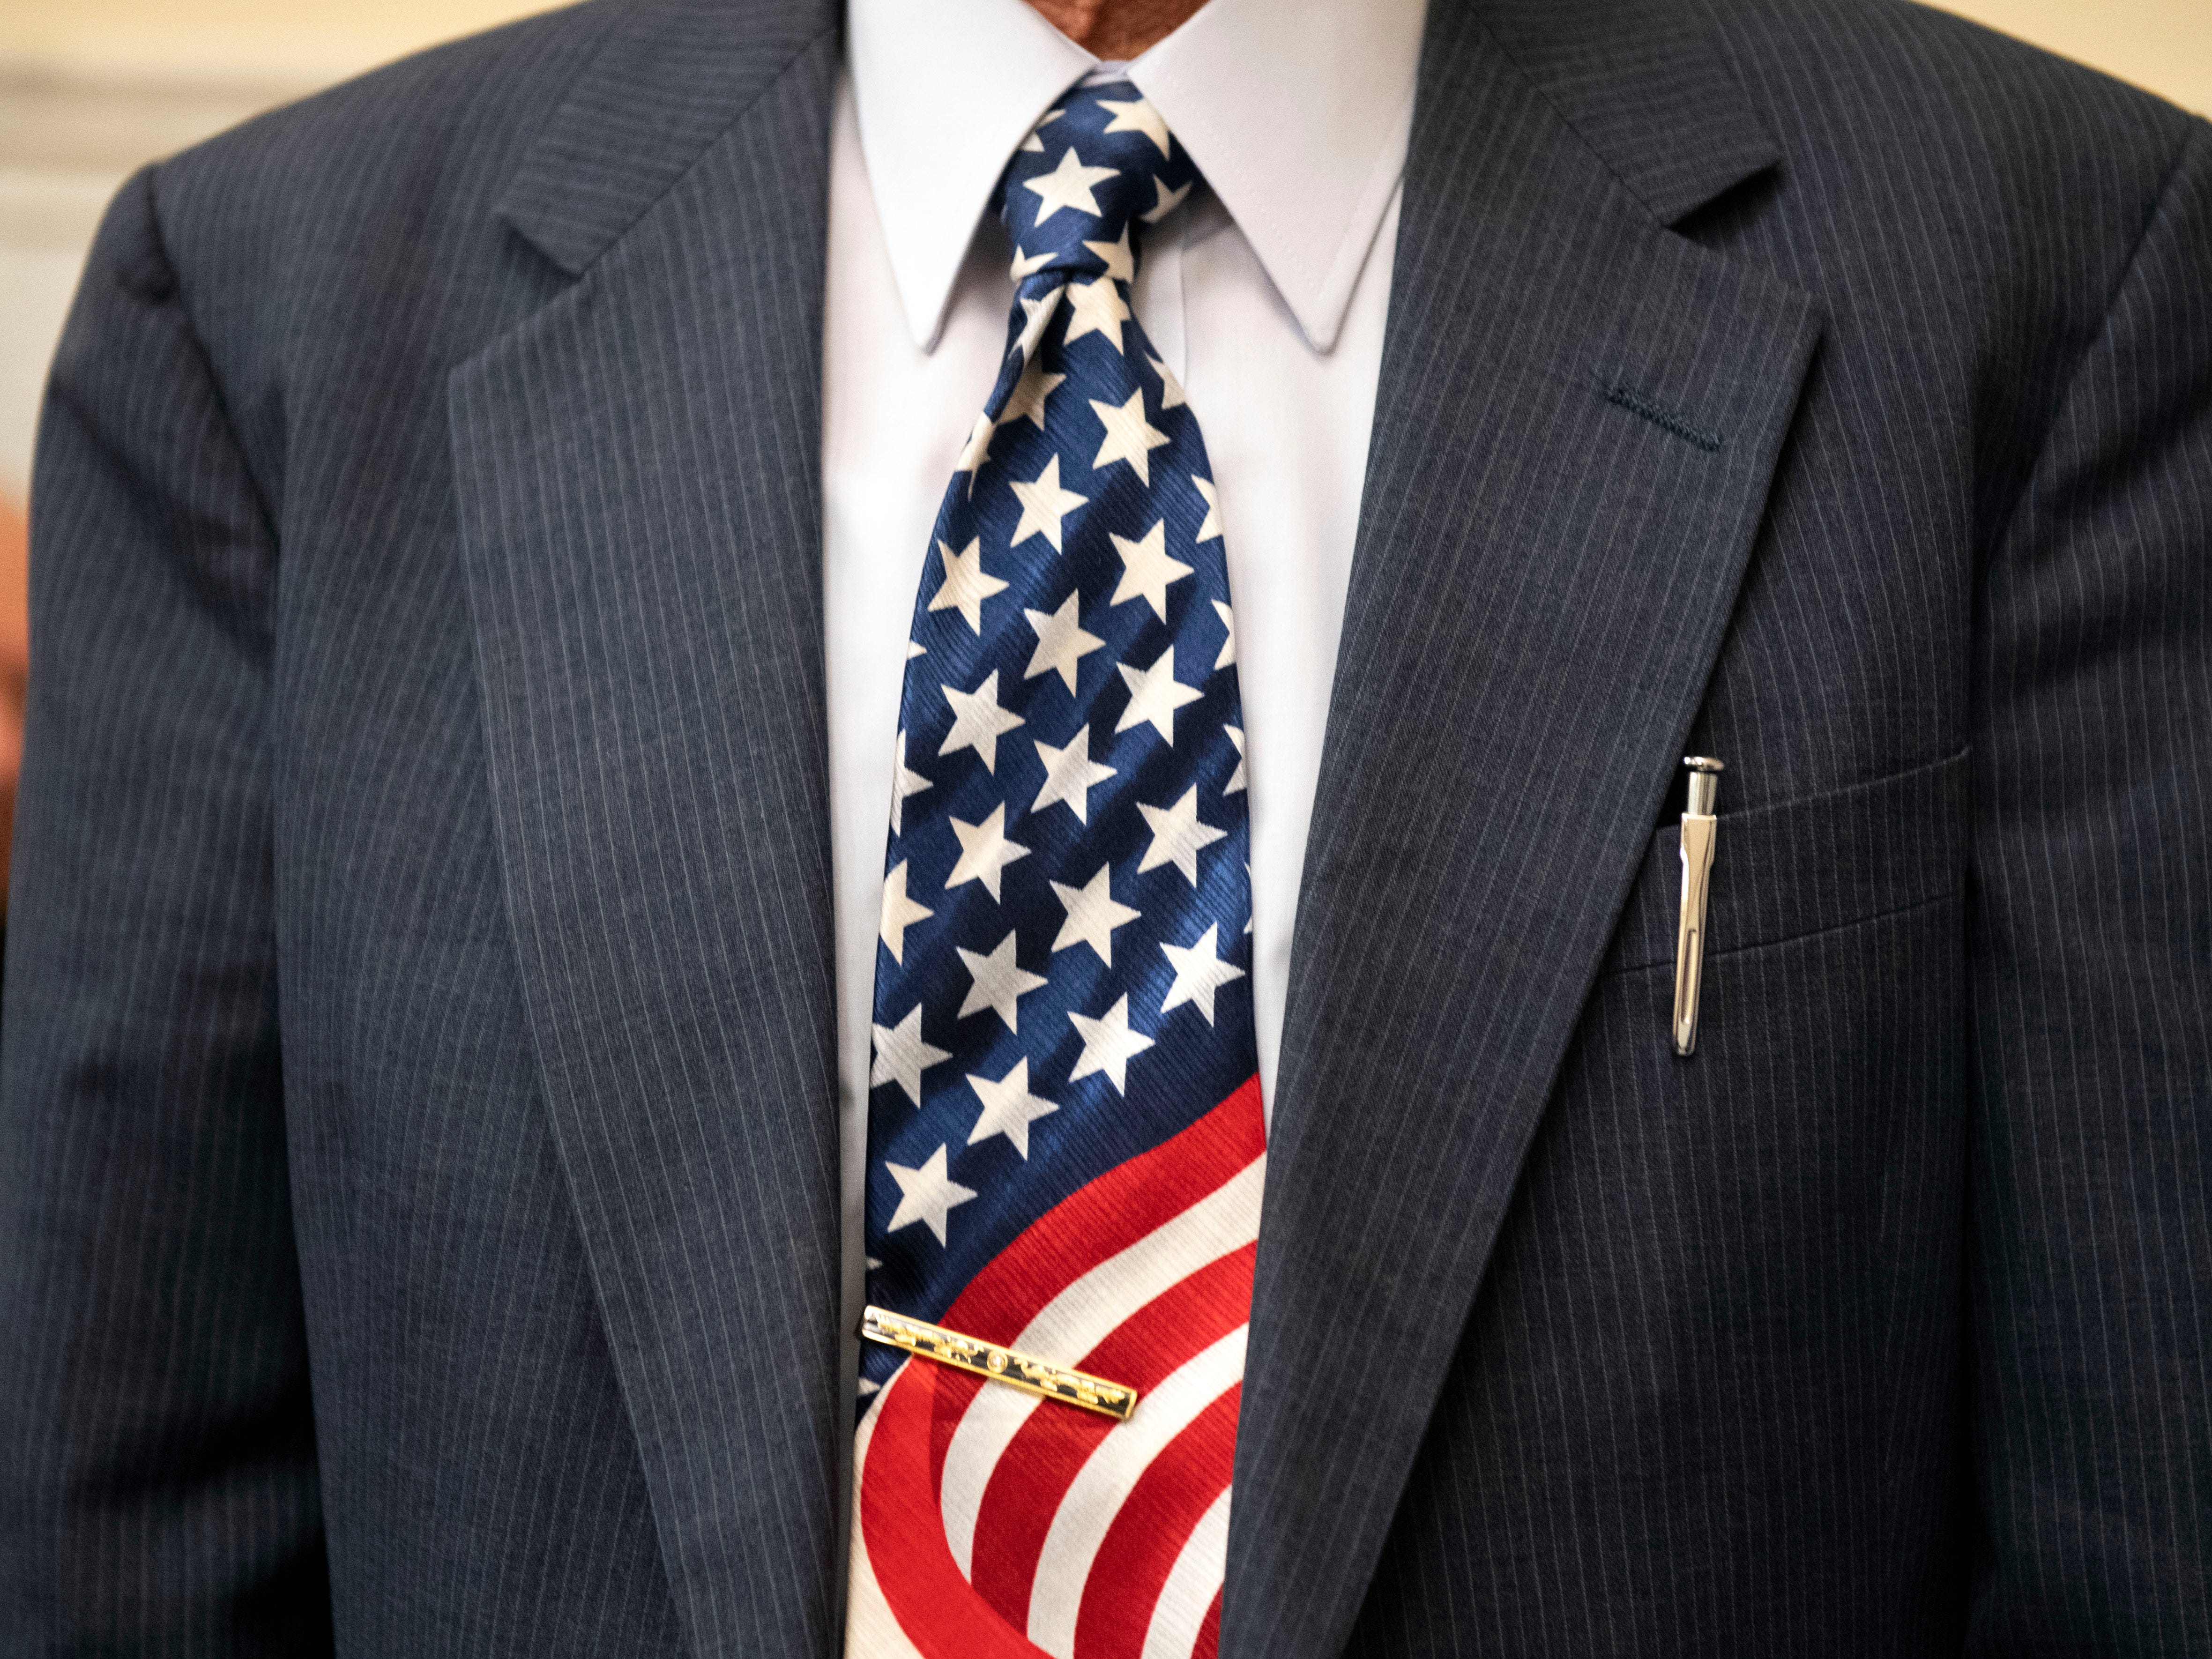 Mien Dinh Nguyen, originally from Vietnam, shows off his American flag themed tie during a naturalization ceremony at the York County Administration Center, Thursday, Oct. 25, 2018. Nguyen has taken the citizenship test six times, failing five, and finally became a U.S. citizen on Thursday. during a naturalization ceremony at the York County Administration Center, Thursday, Oct. 25, 2018. The 49 new citizens immigrated from 30 different countries.